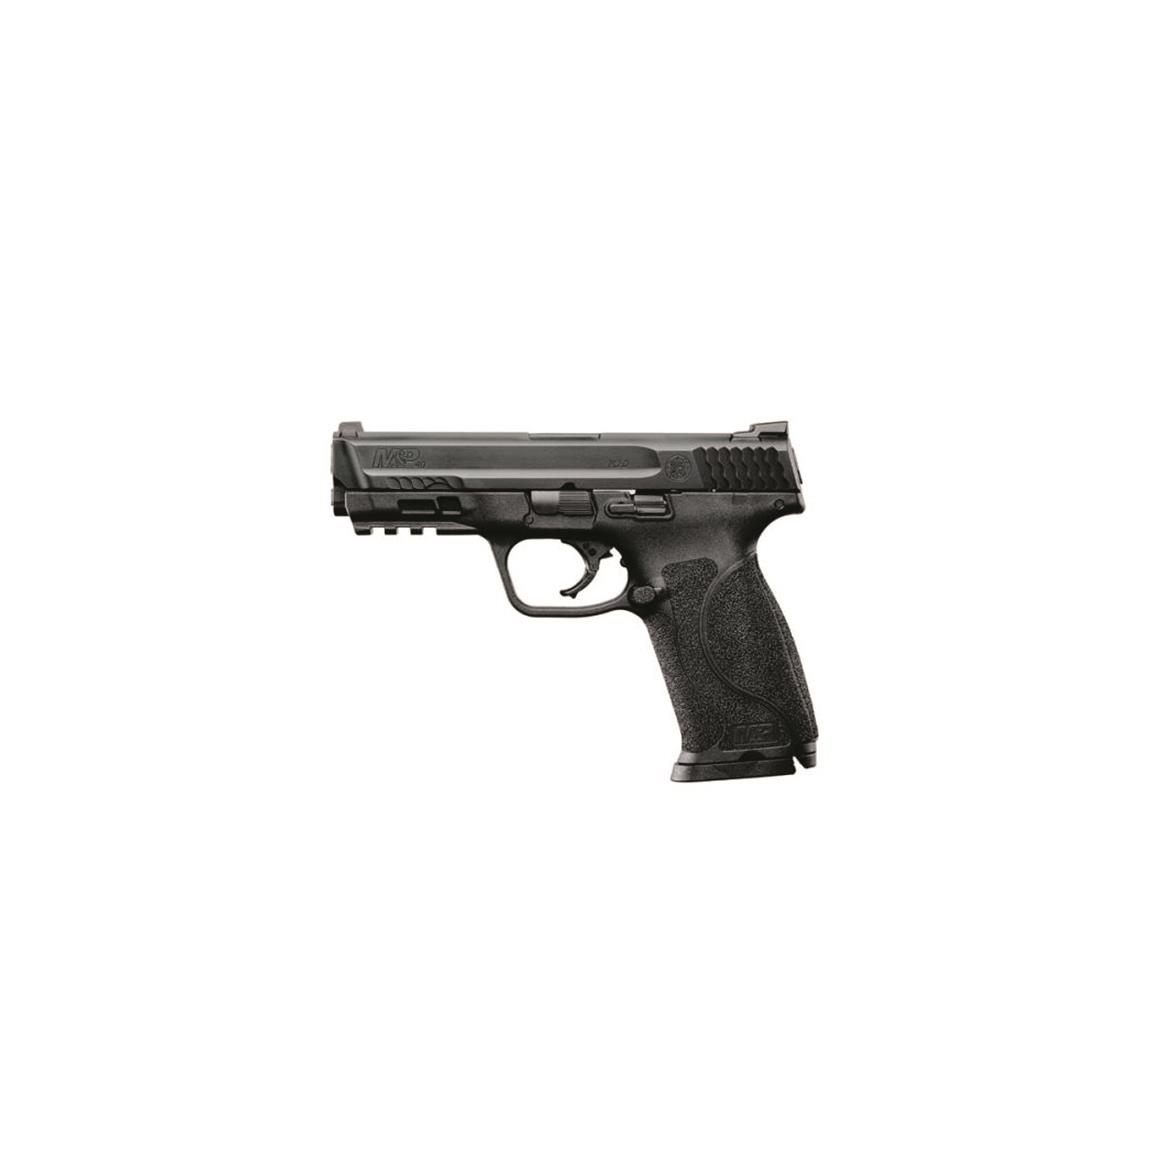 "Smith & Wesson M&P40 M2.0, Semi-Automatic, .40 S&W, 4.25"" Barrel, No Safety, 15+1 Rounds"